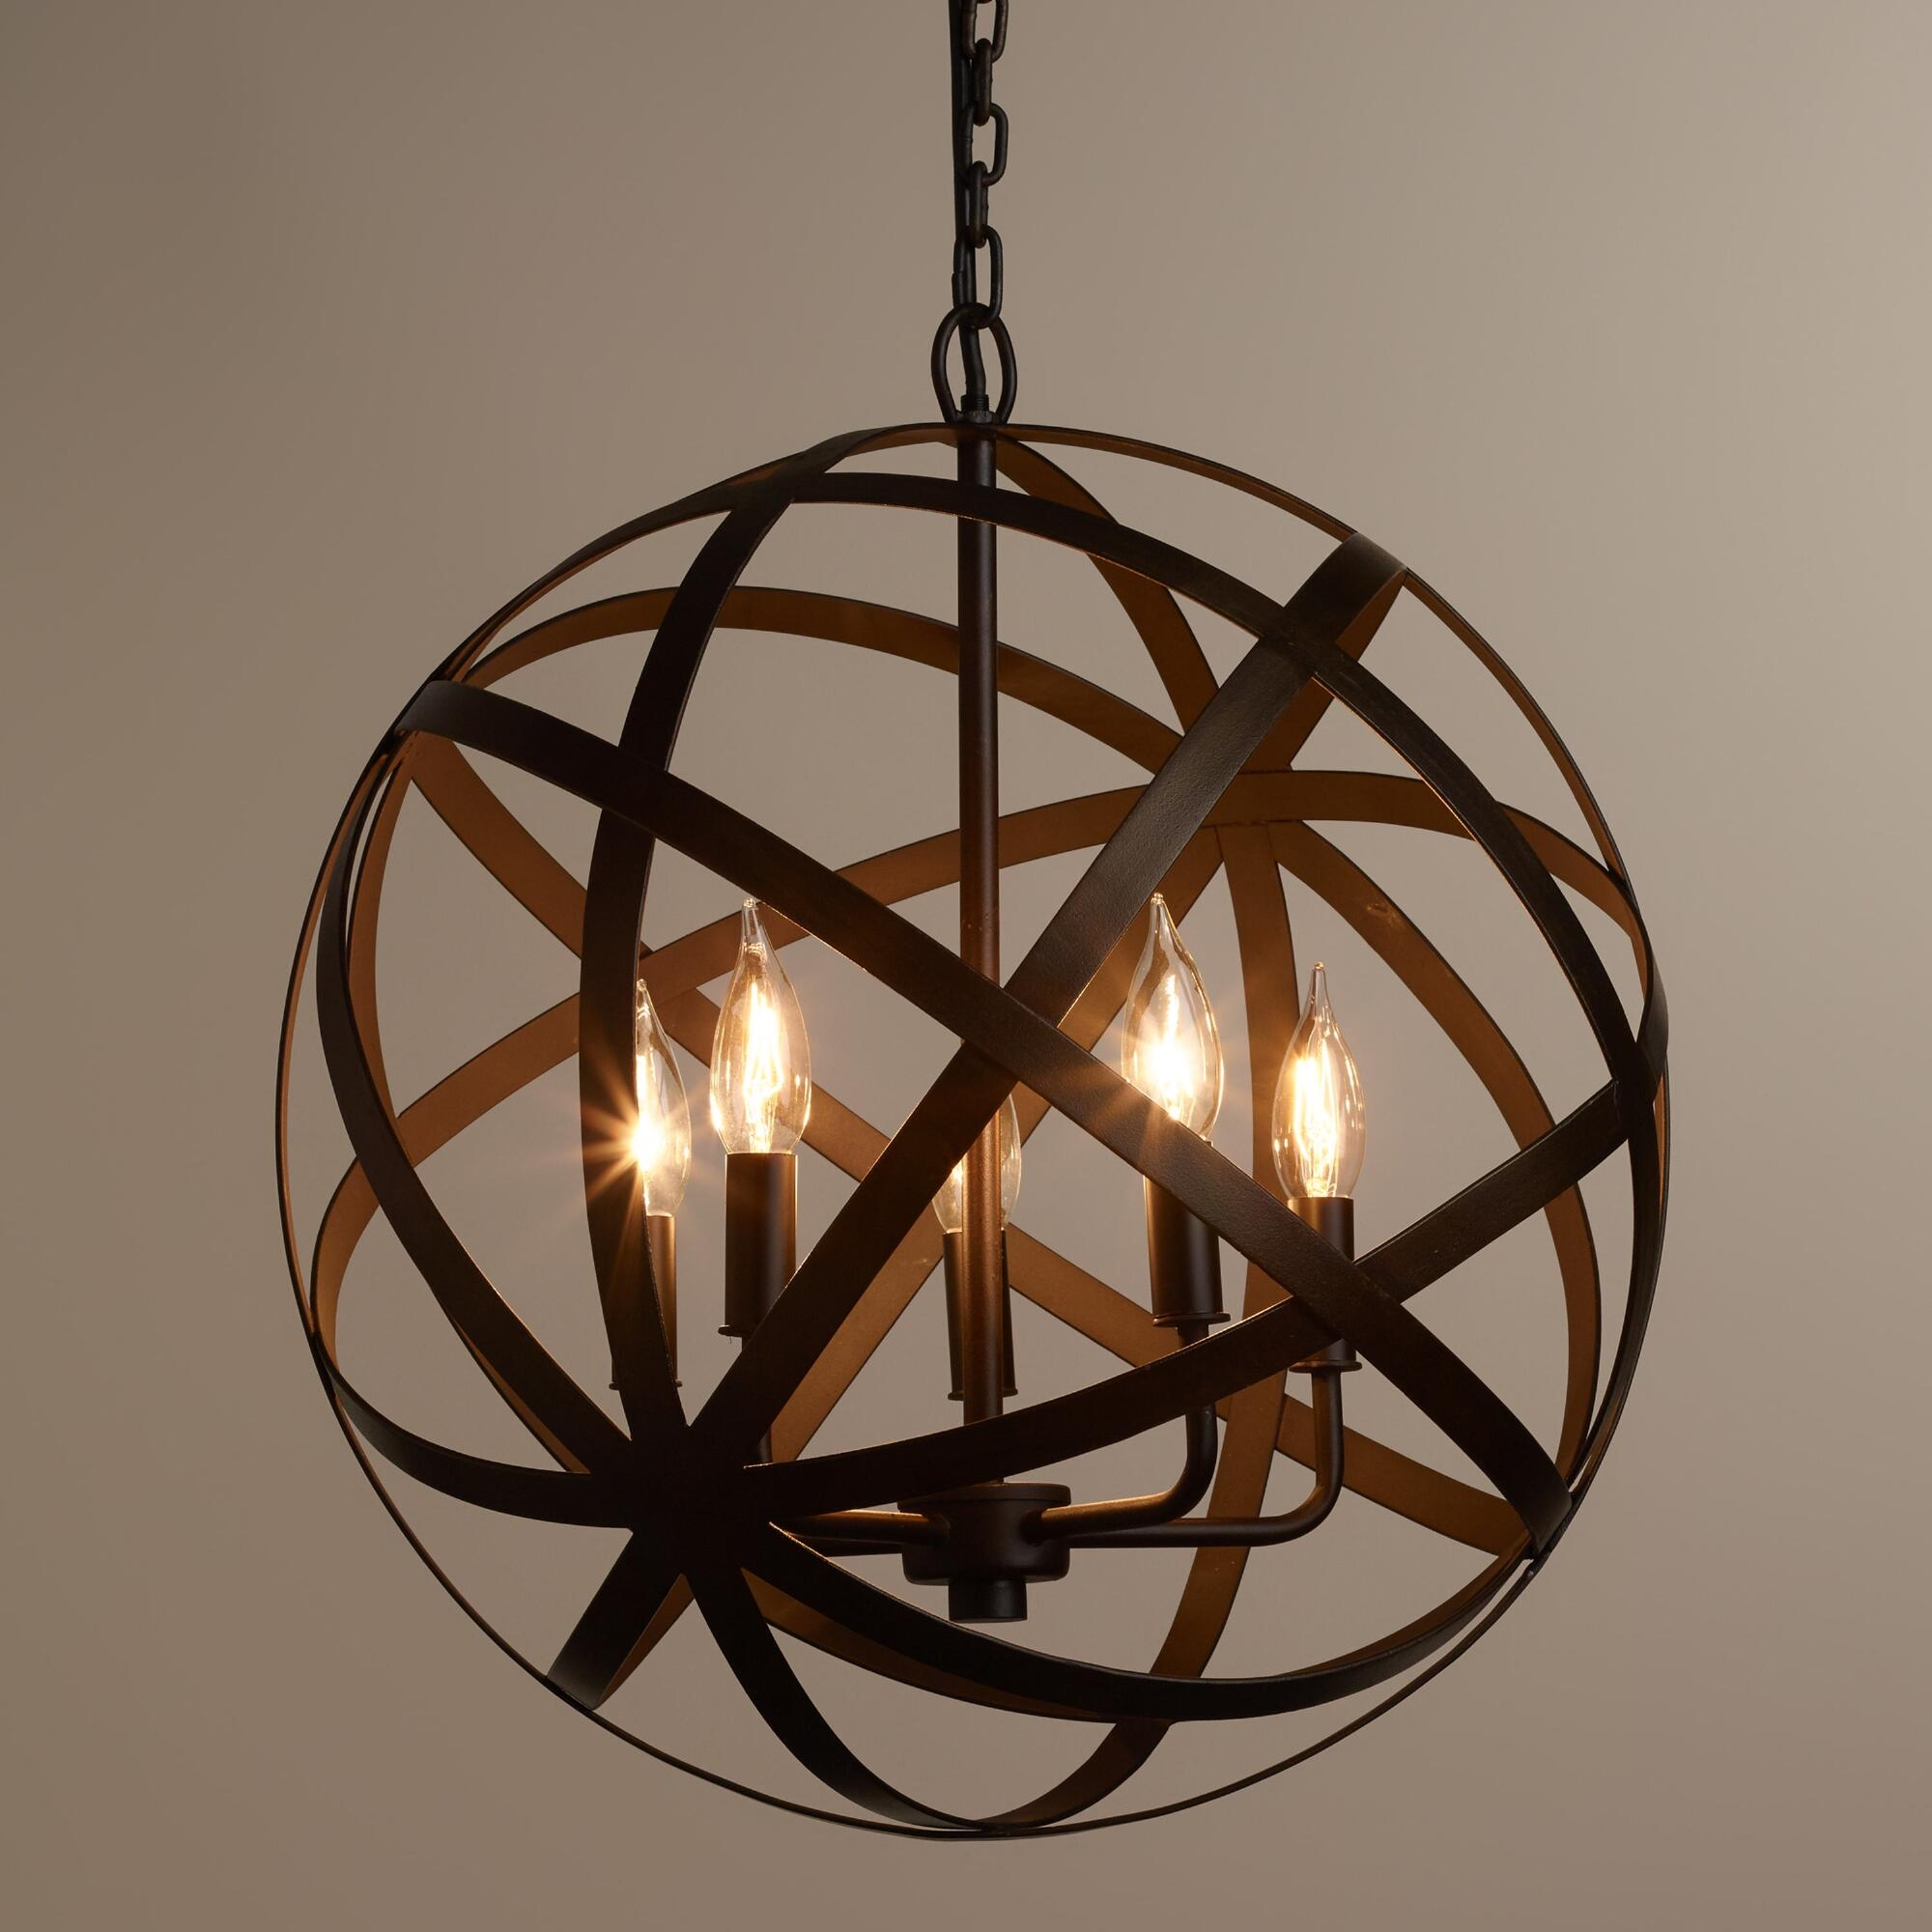 Foyer Lighting Ideas Light Is From Restoration Hardware Foucault Intended For Cage Chandeliers (#8 of 12)